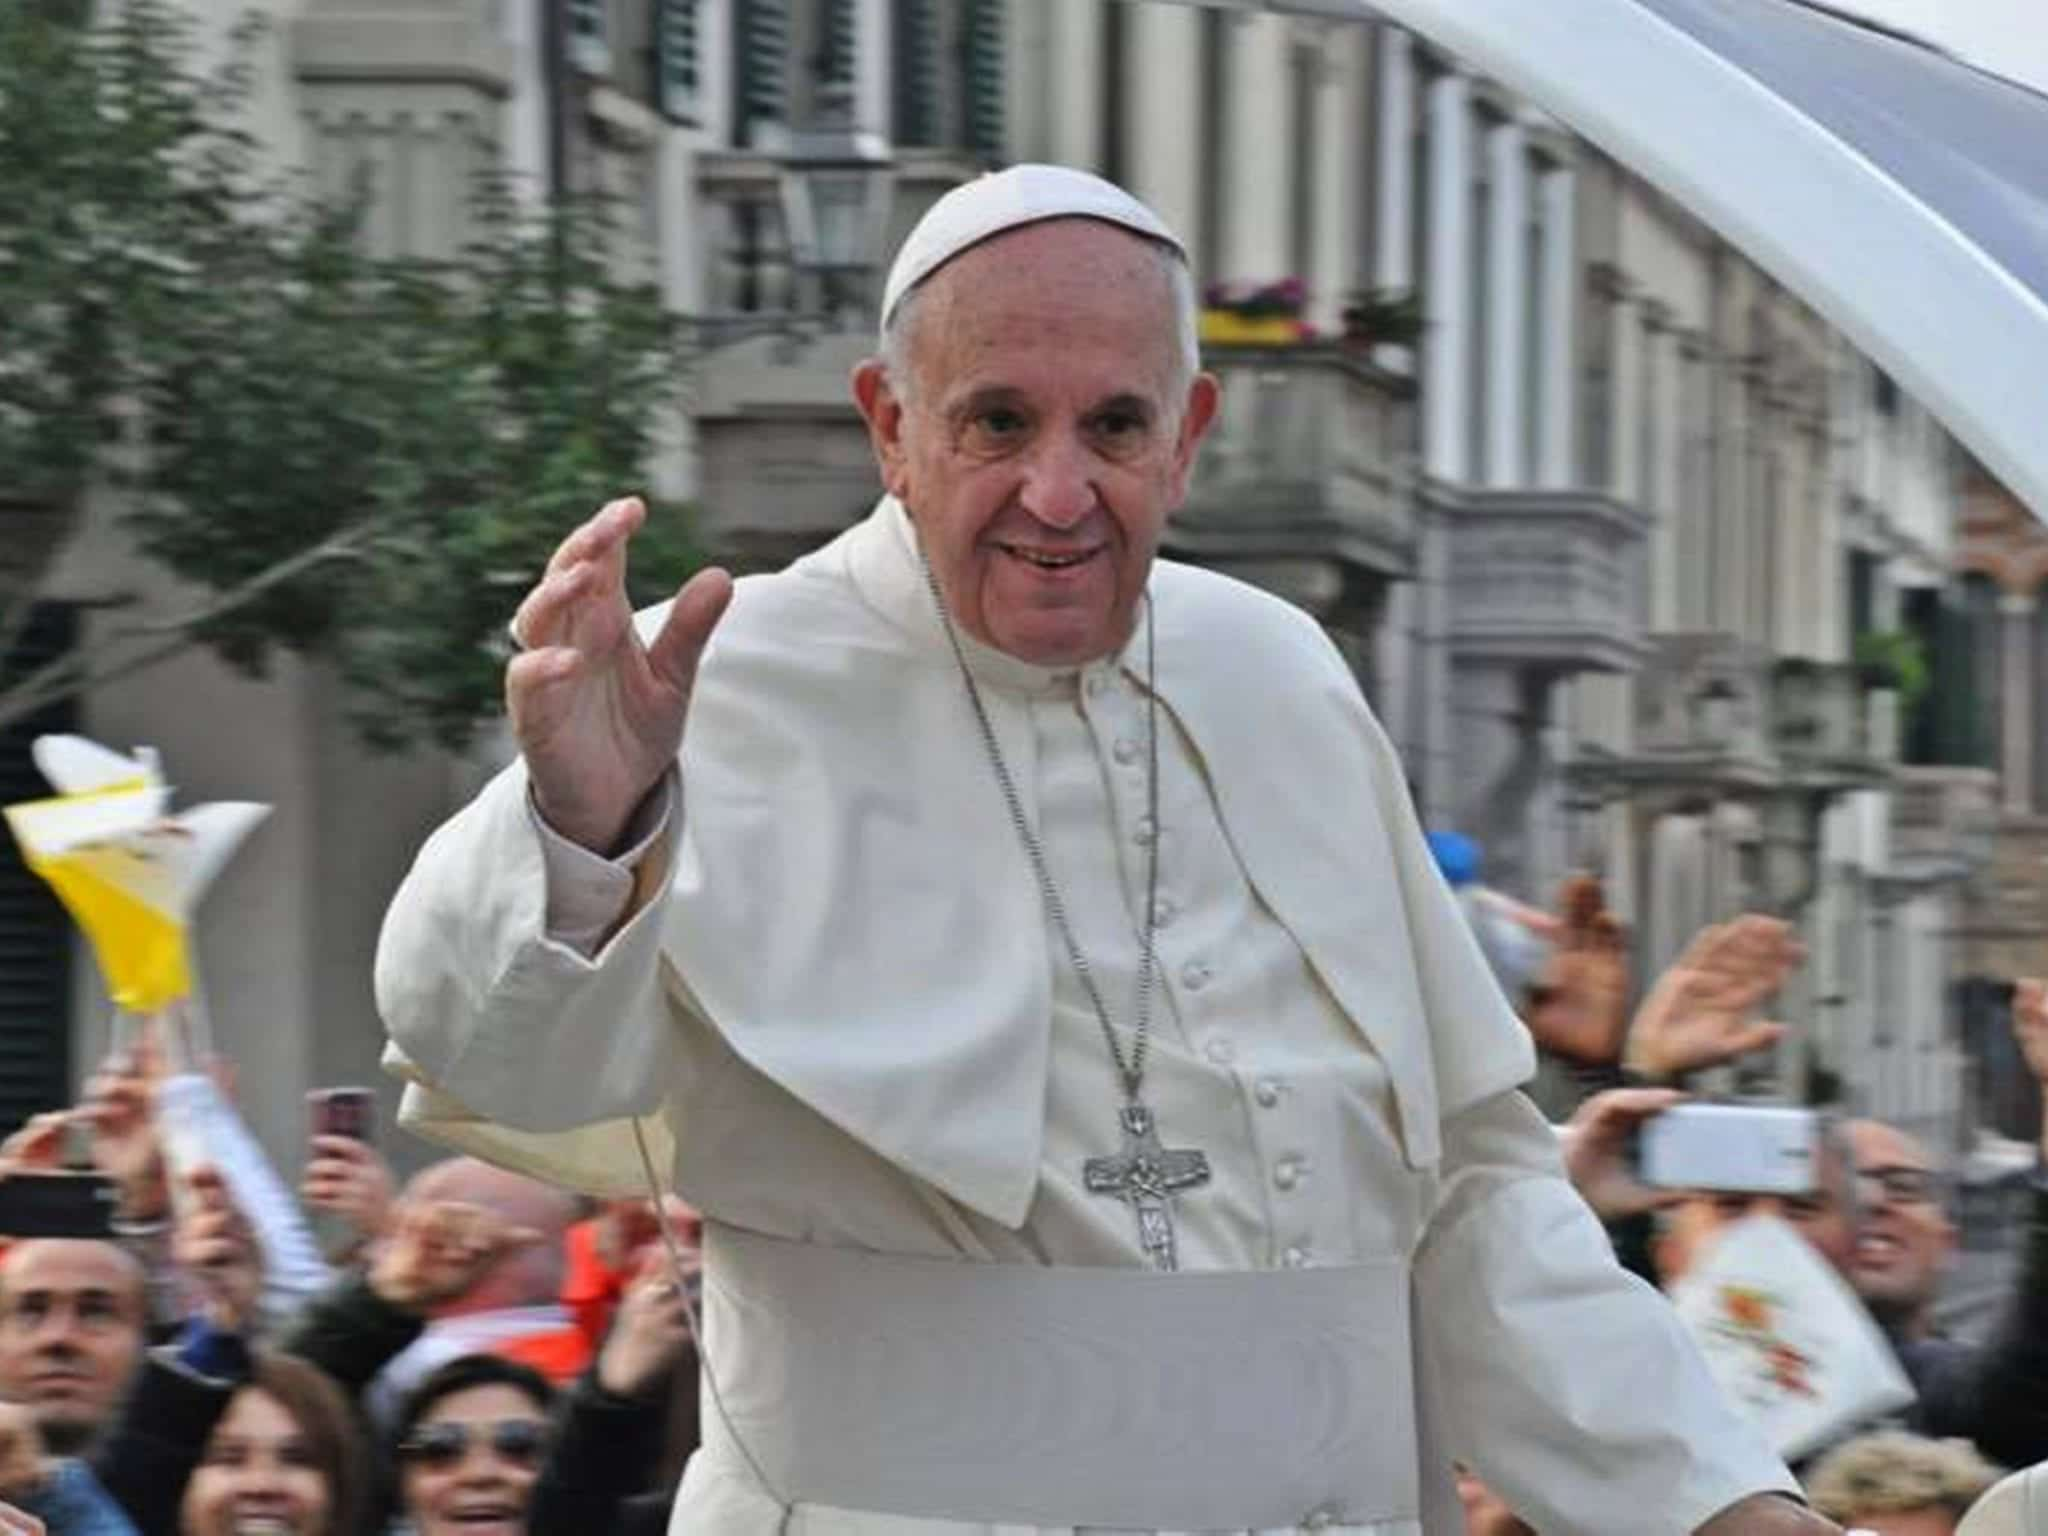 Pope Francis; image by Zebra48bo, CC BY-SA 4.0, from Wikimedia Commons, no changes.